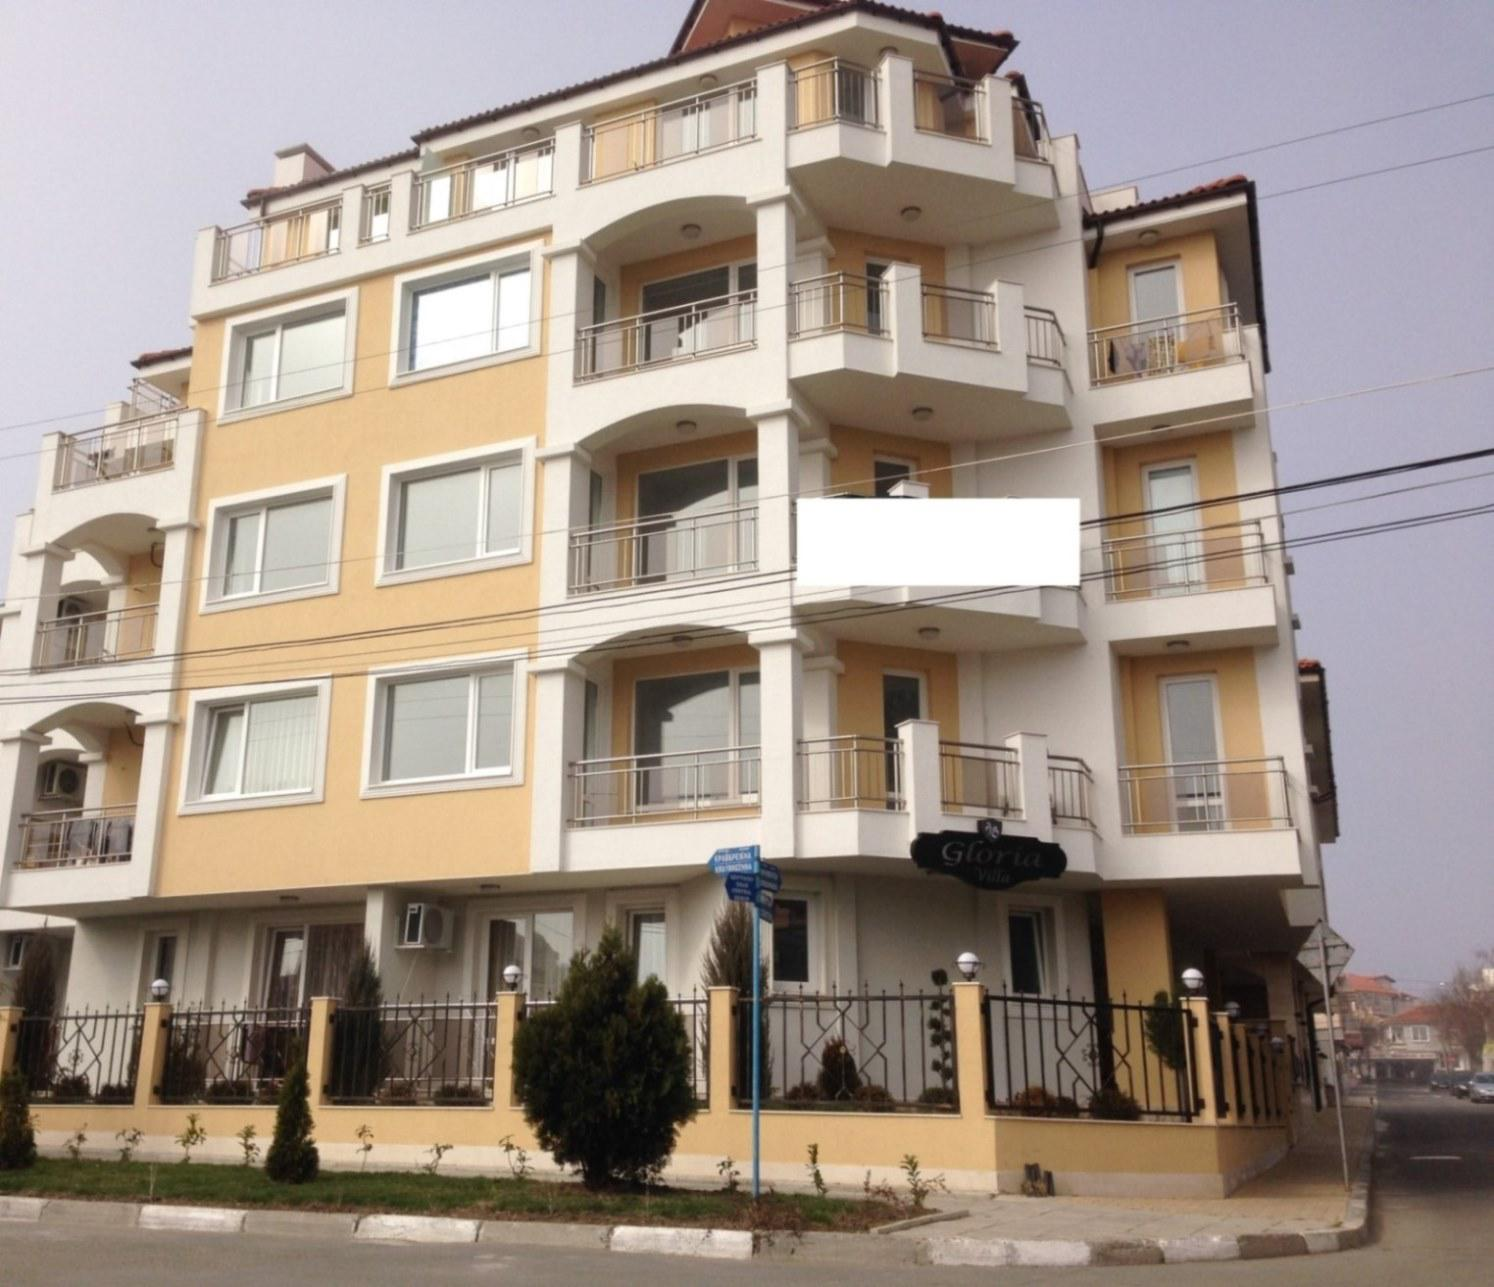 New Apartments For Sale In A Small Coastal Bulgarian